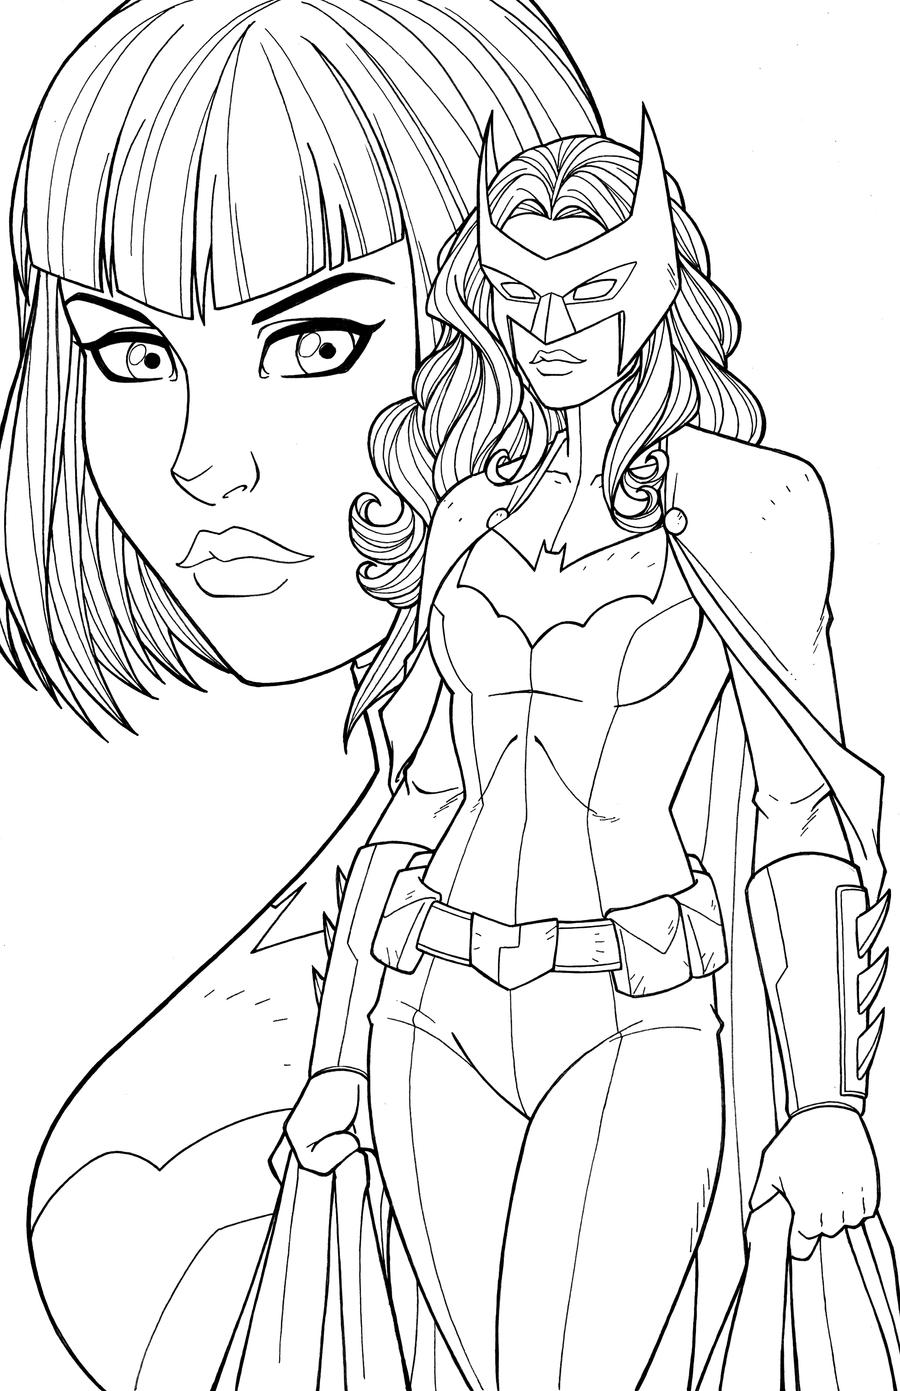 batwoman coloring pages - batwoman by jamiefayx on deviantart